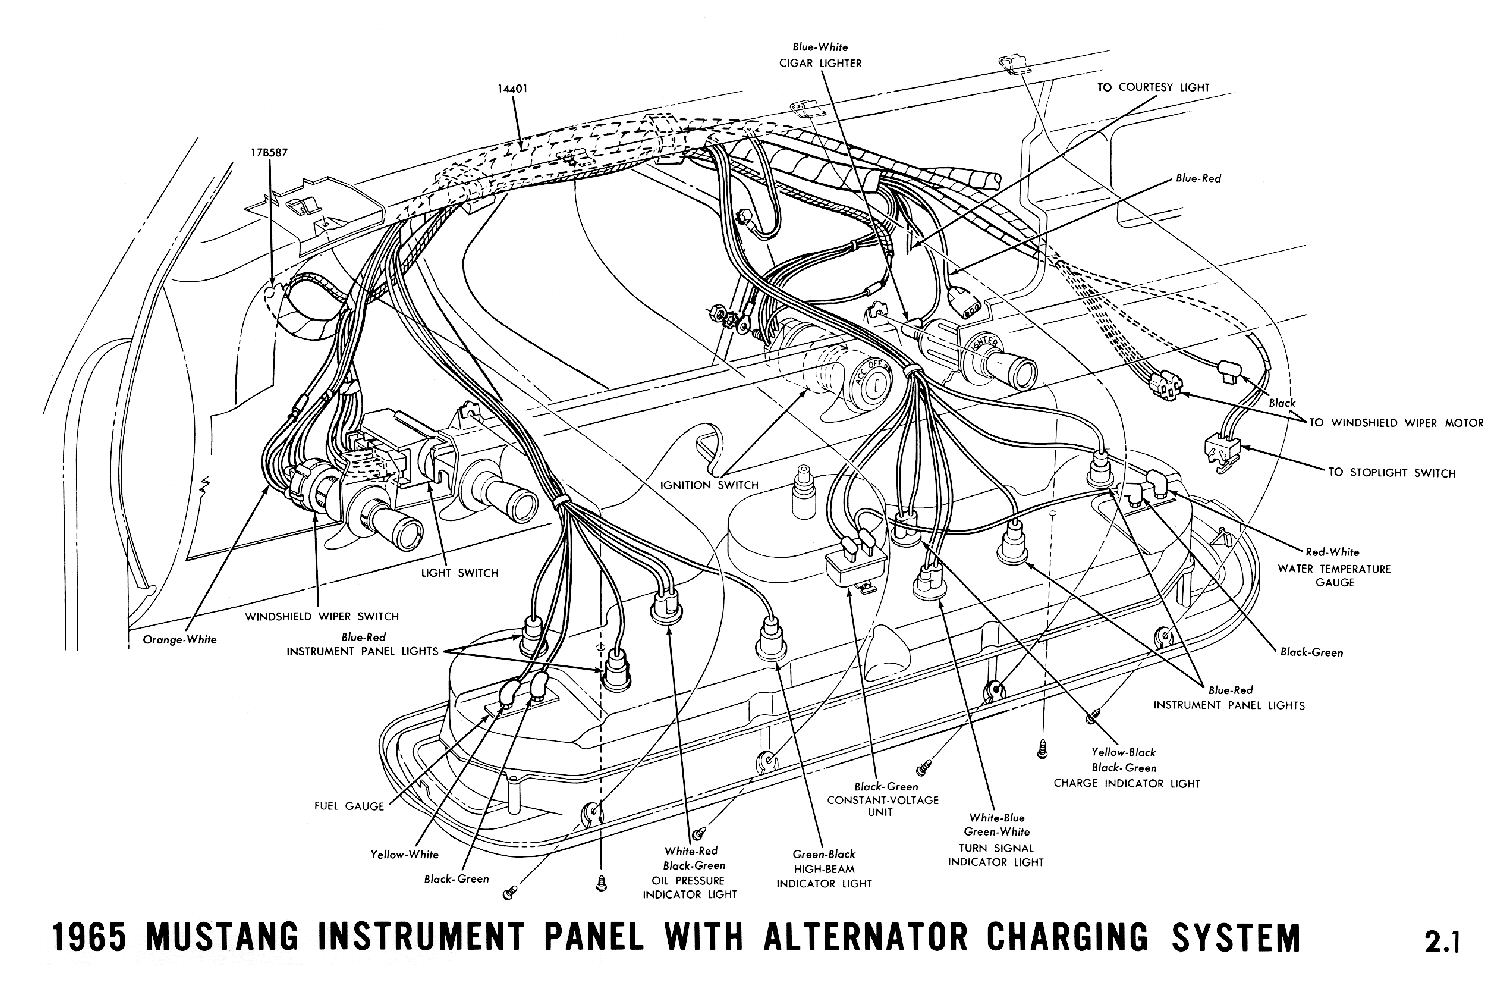 1965 mustang wiring diagrams average joe restoration 1989 mustang wiring harness diagram Mustang Wiring Harness Diagram #4